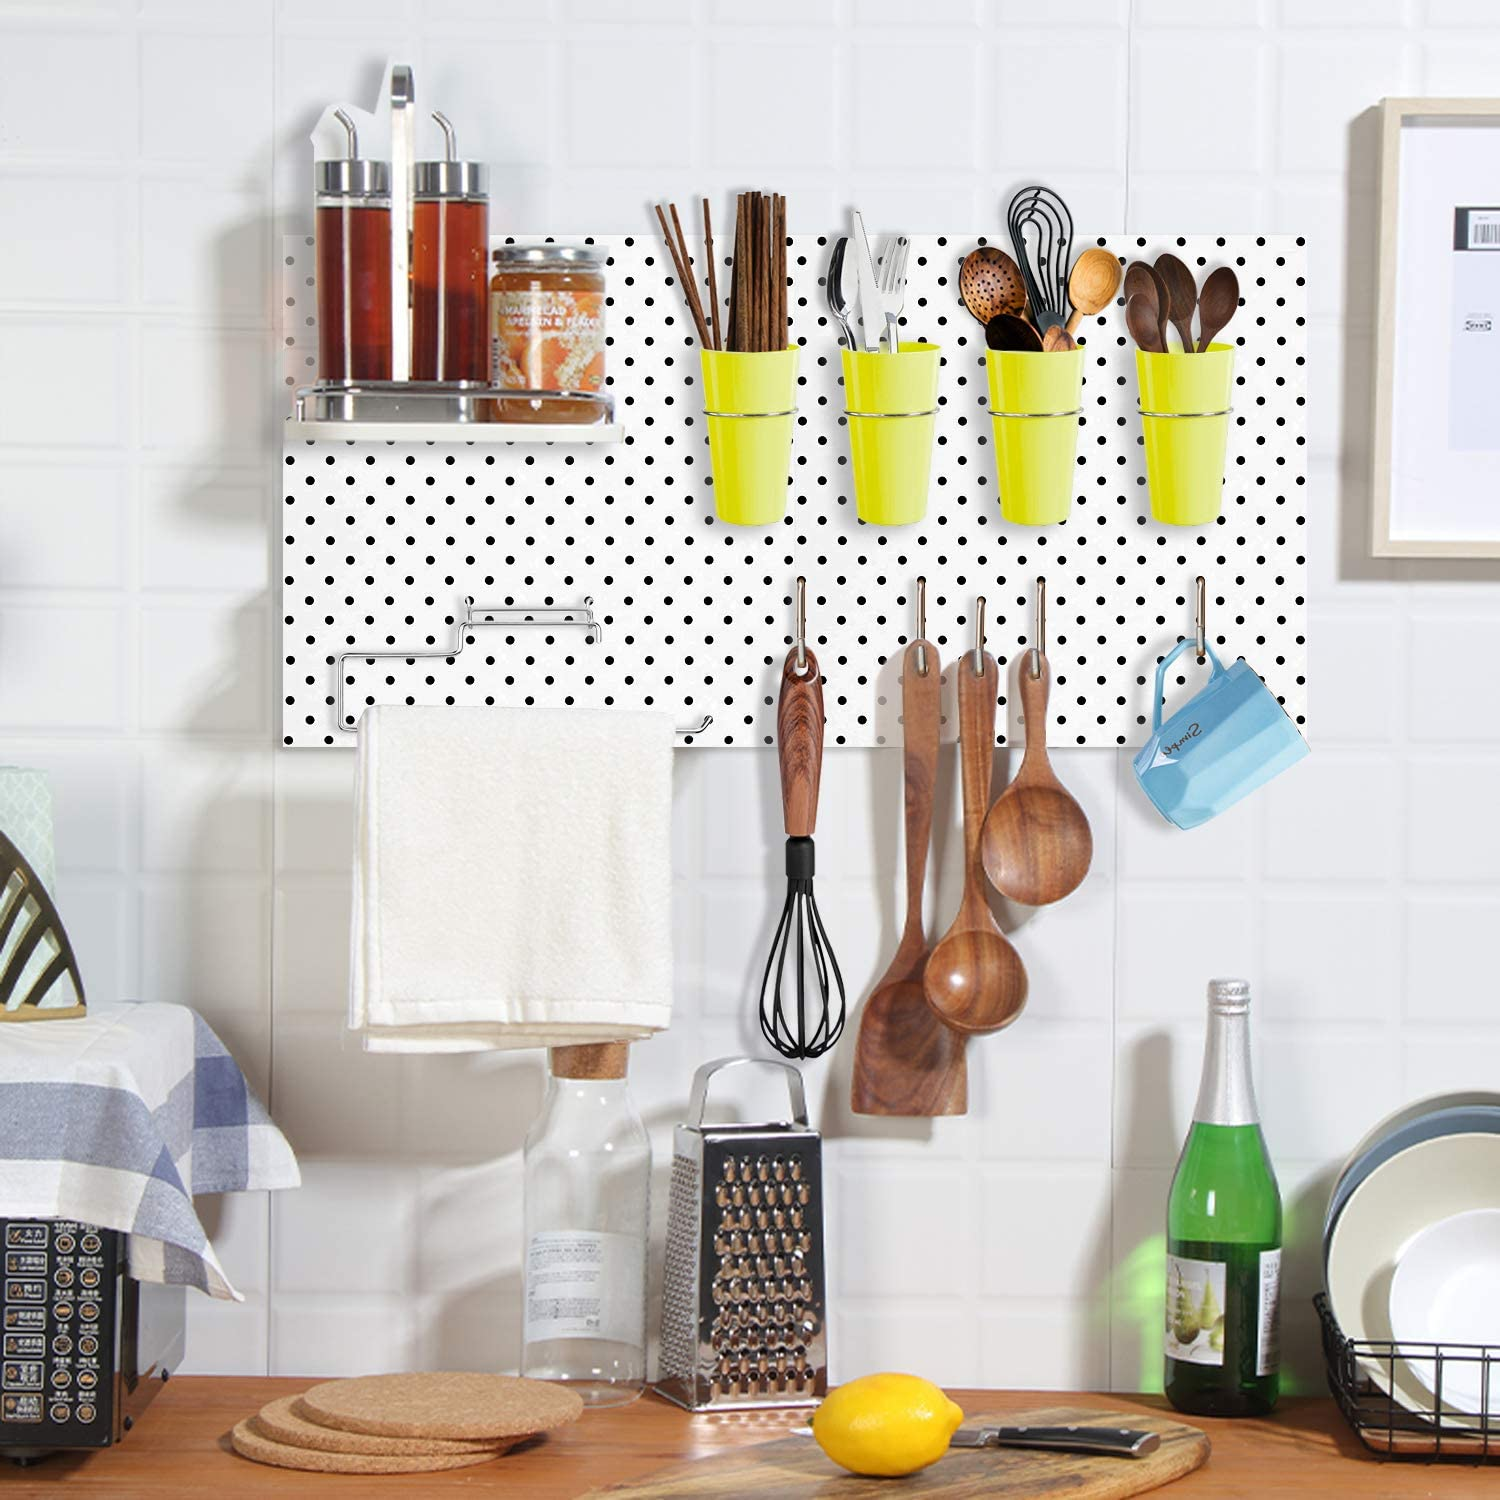 Craft Room Workshop Pegboard Cup Holder Will Not Fall Out for Organizing Tool Shed Ring Style Pegboard Hooks with Cups Garage 4 Sets Pegboard Bins with Rings